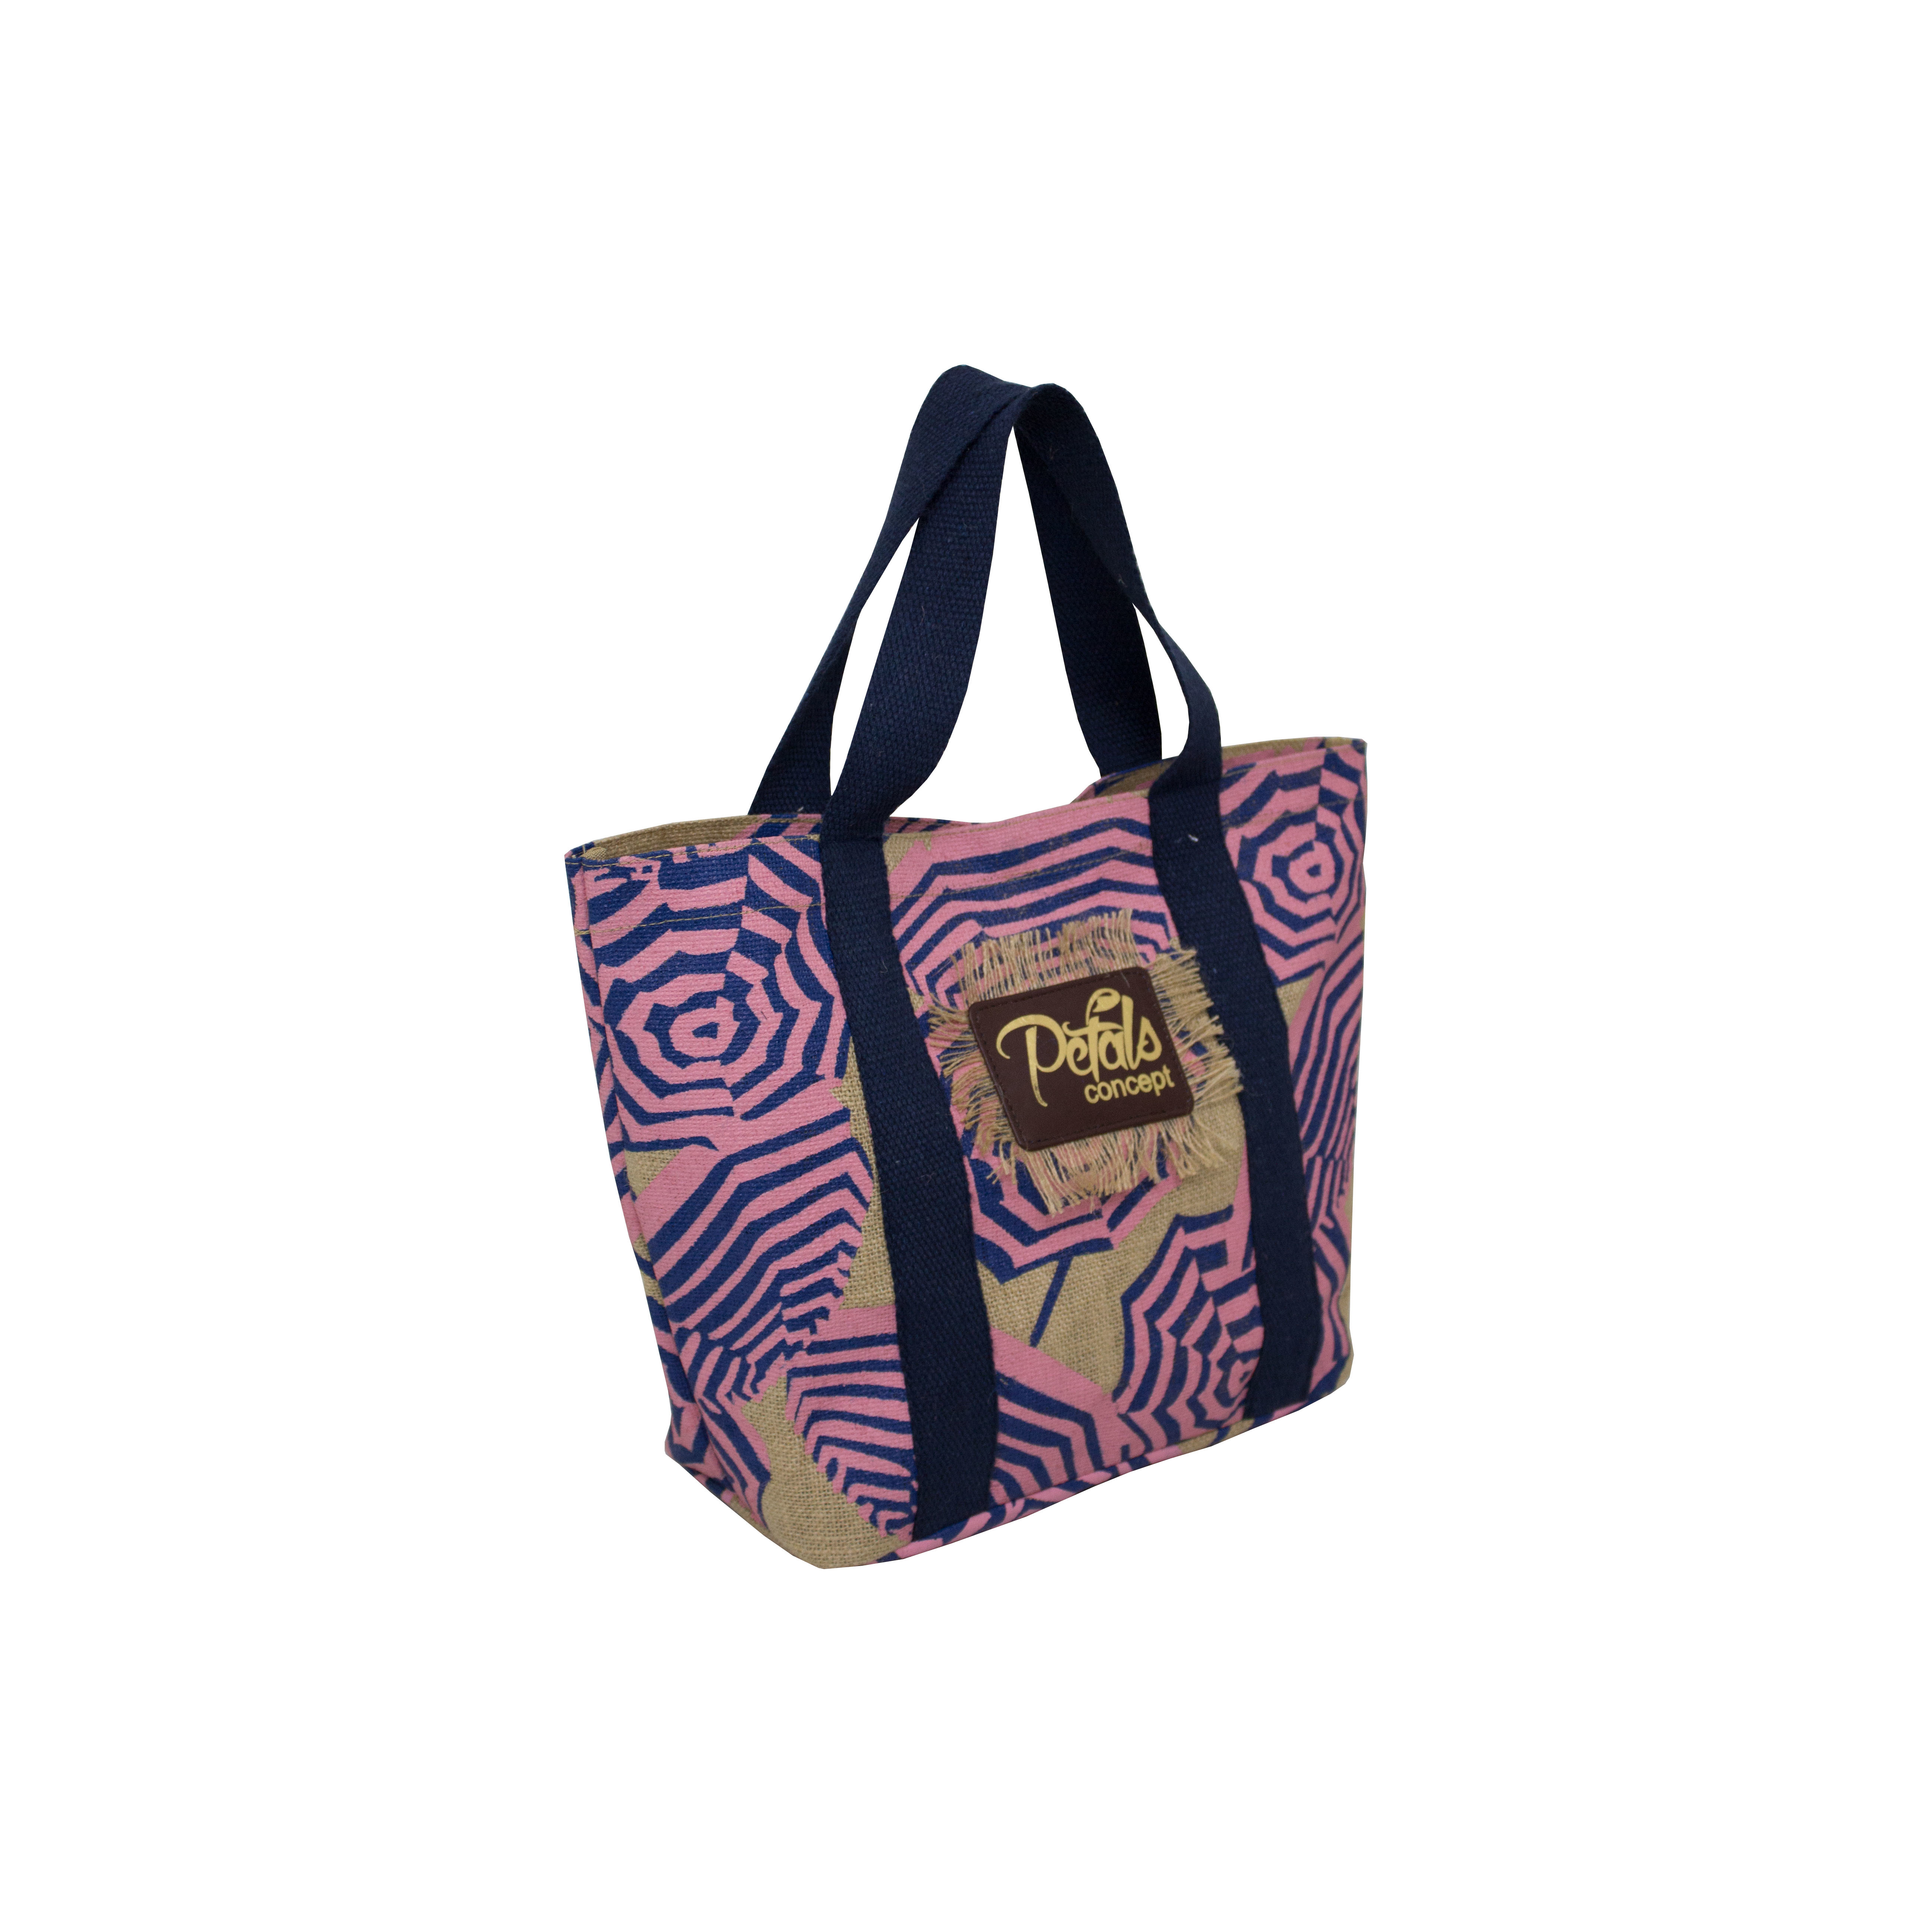 PP Laminated Jute Tote Bag With Two Color Overall Umbrella Print